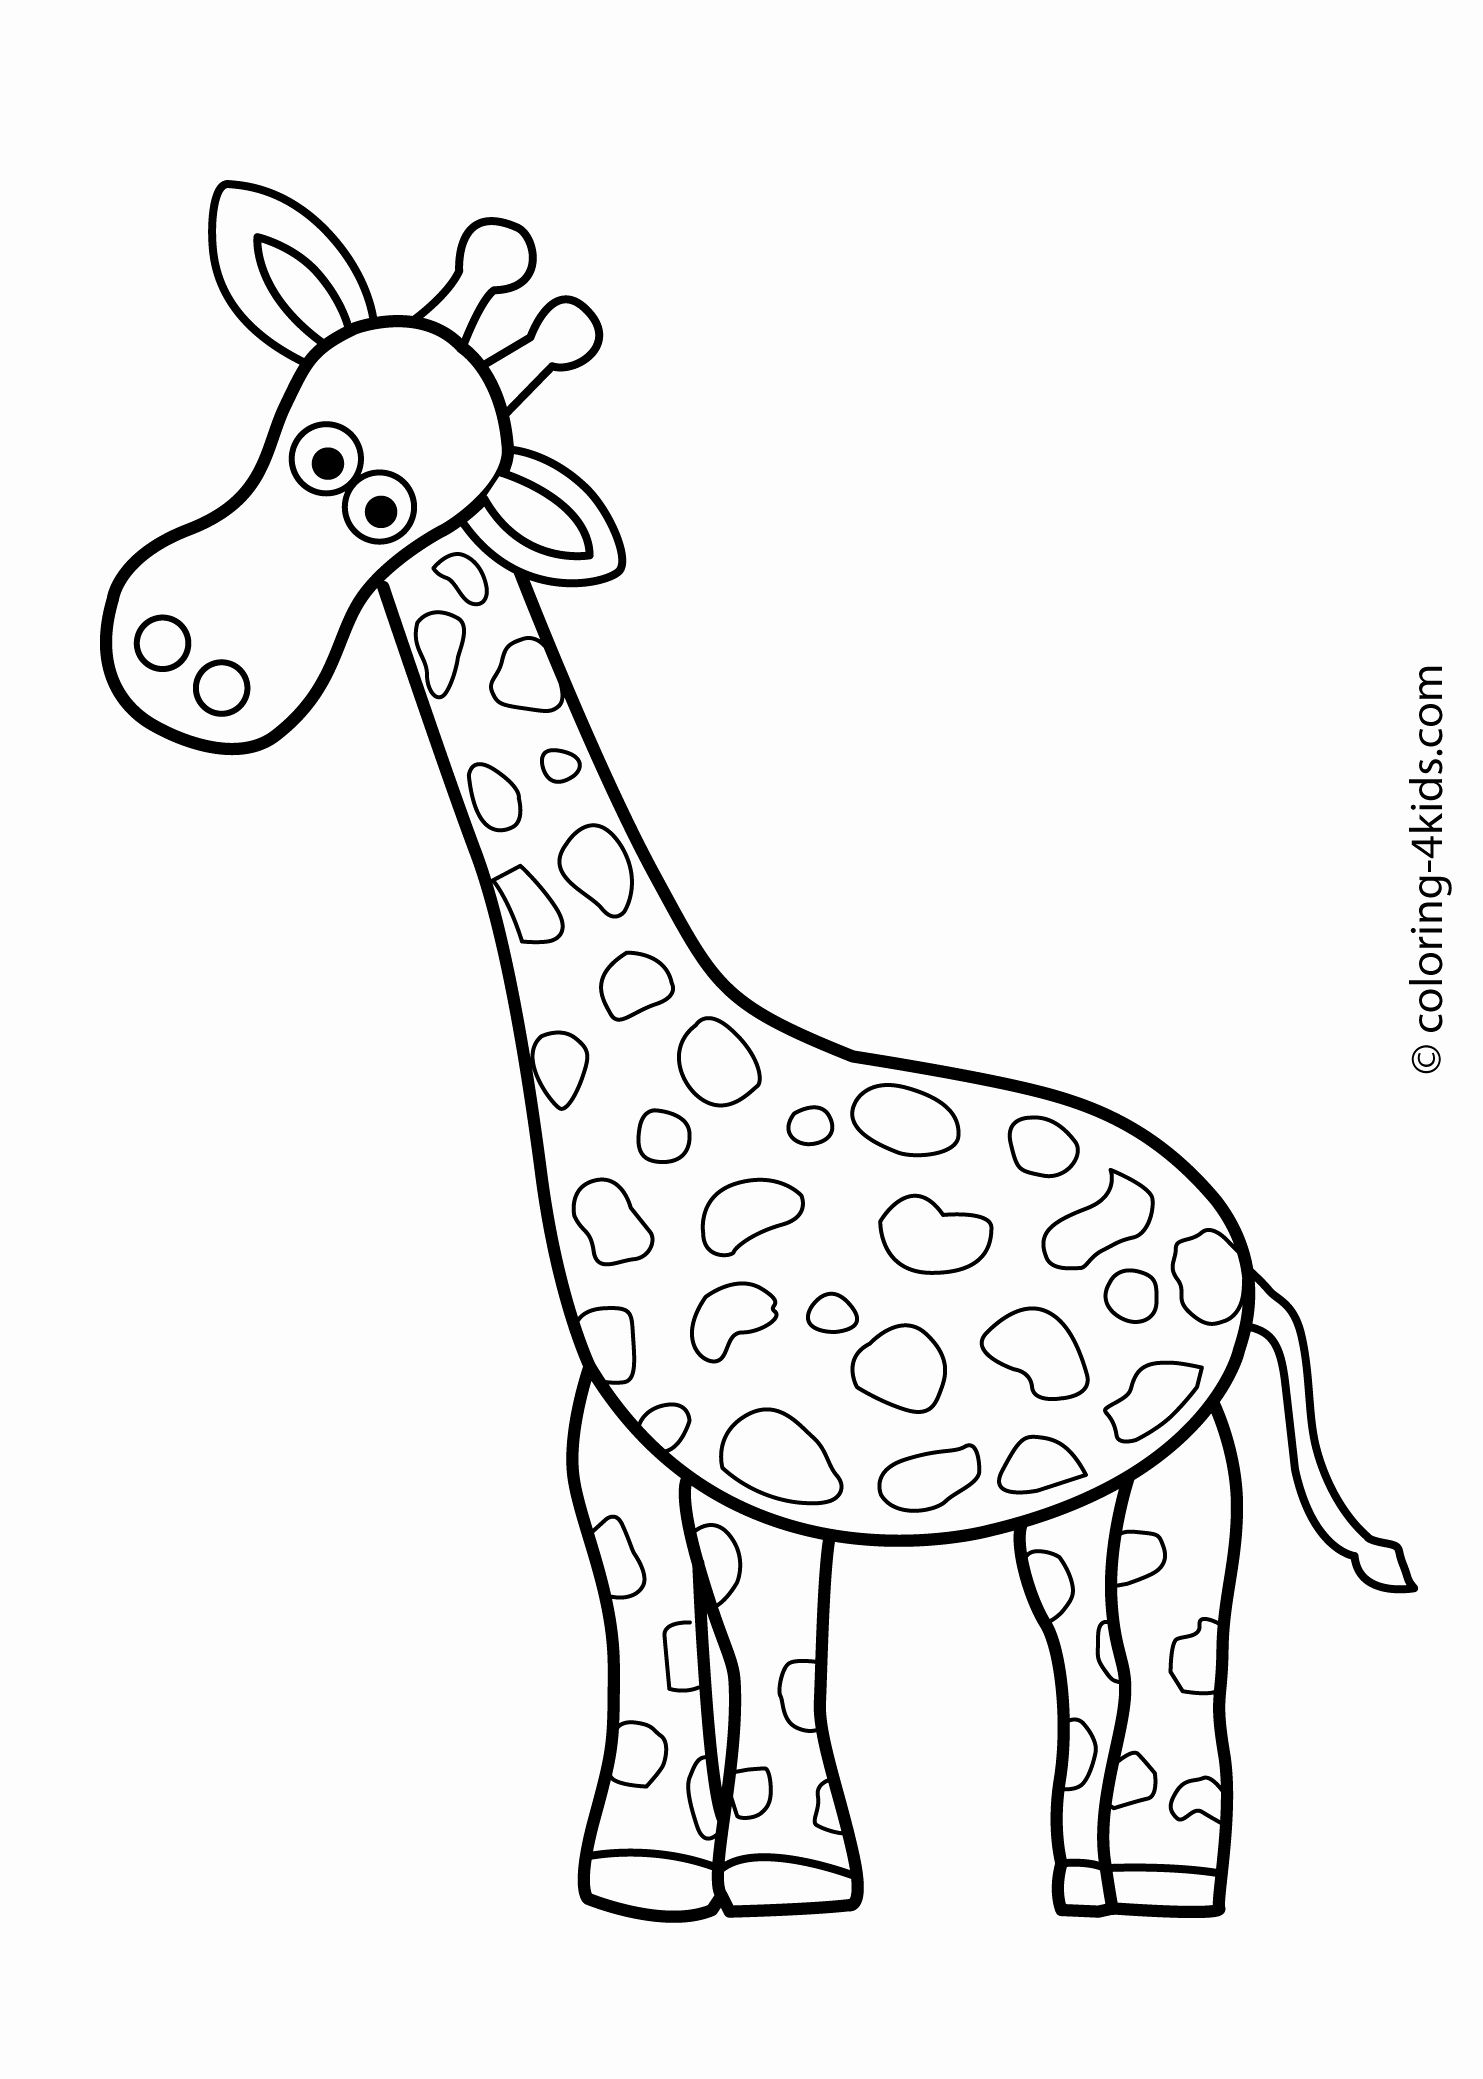 Coloring Australian Animals Coloring Pages Gallery in